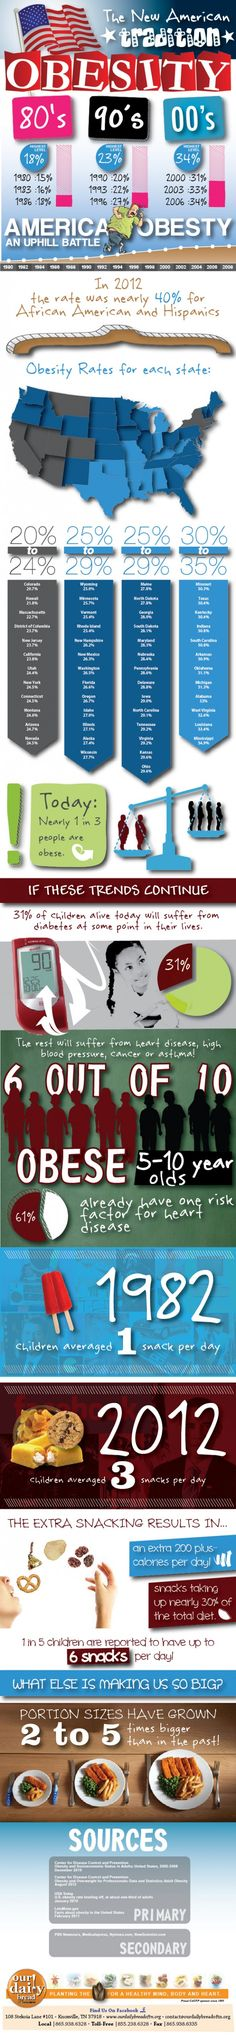 Weight Loss - Obesity Epidemic: Did You Know You May Be Obese?[Infographic]